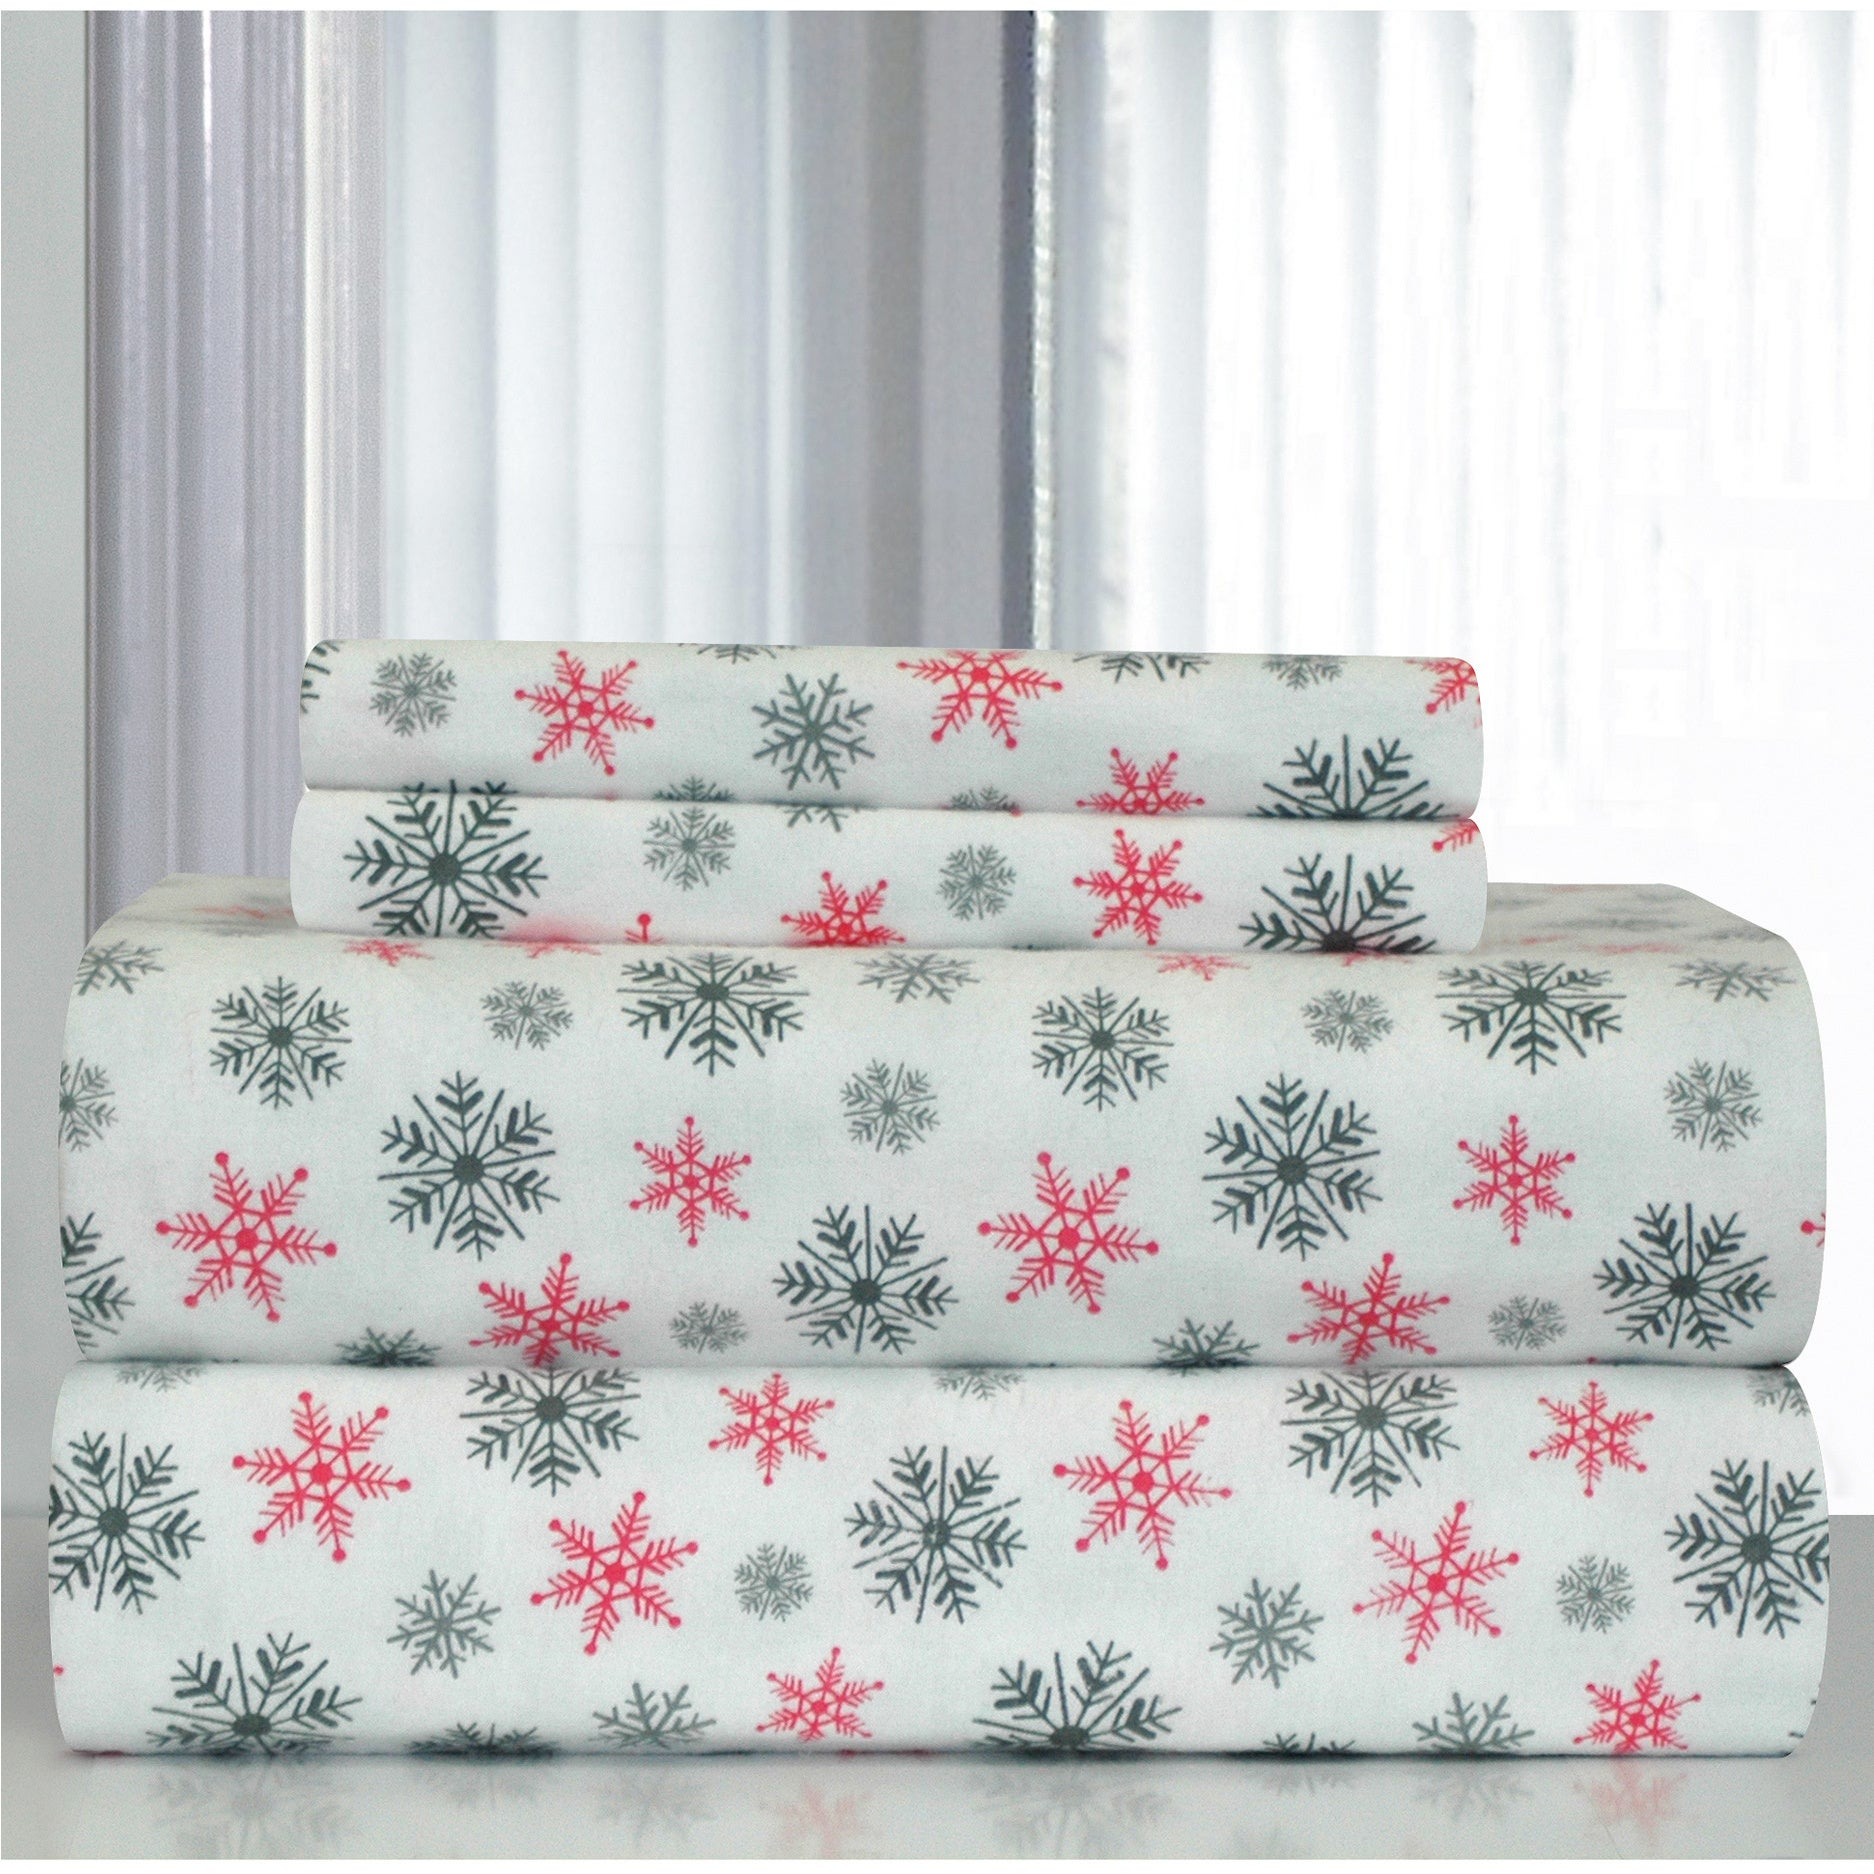 Pointehaven White Snowflakes Printed Heavyweight Flannel Bed Sheet Set On Sale Overstock 7137027